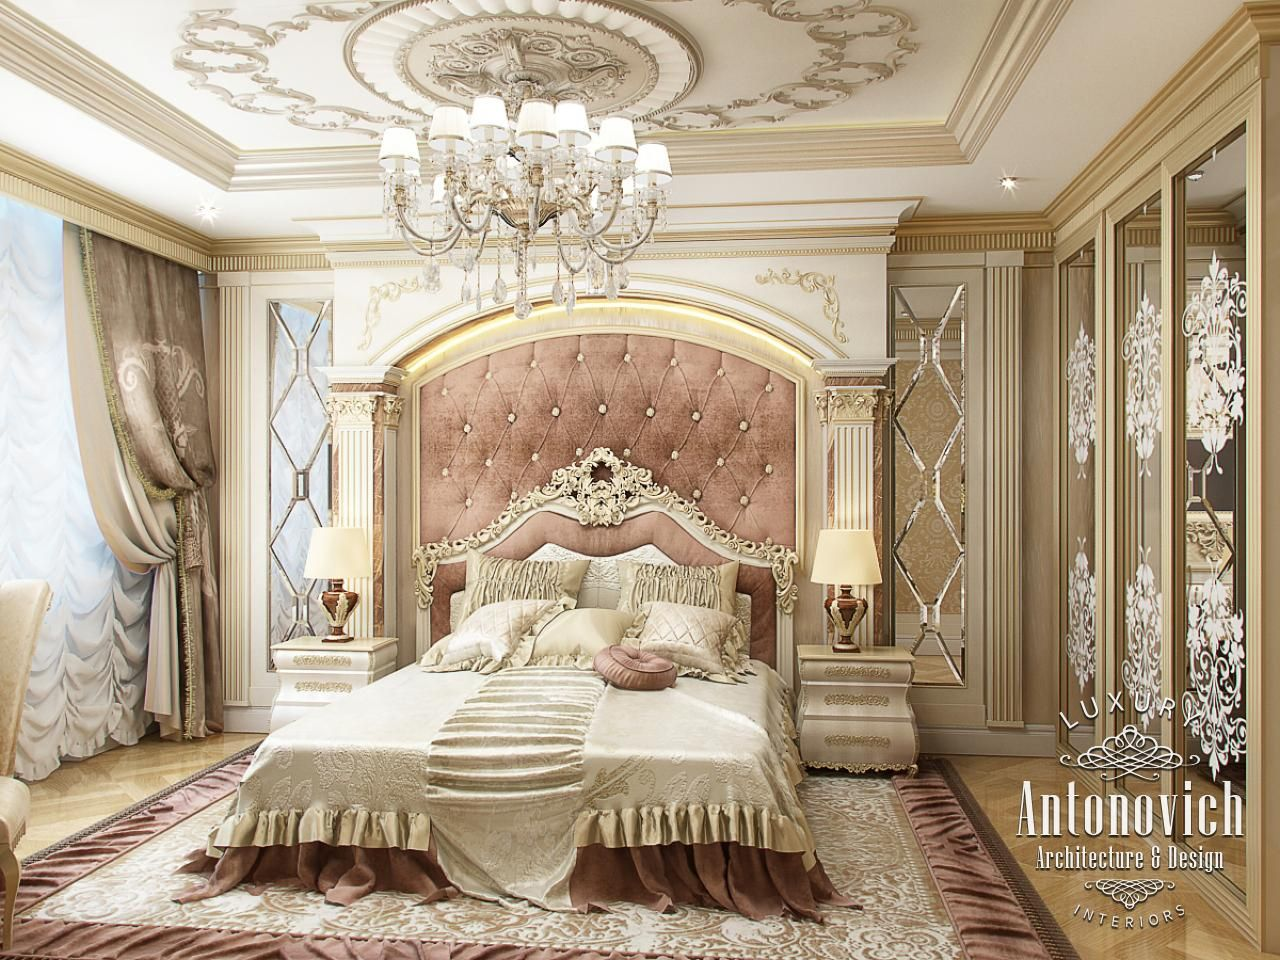 Royal Luxurious Bedrooms Luxurious Bedrooms Luxury Bedroom Design Luxury Bedroom Master